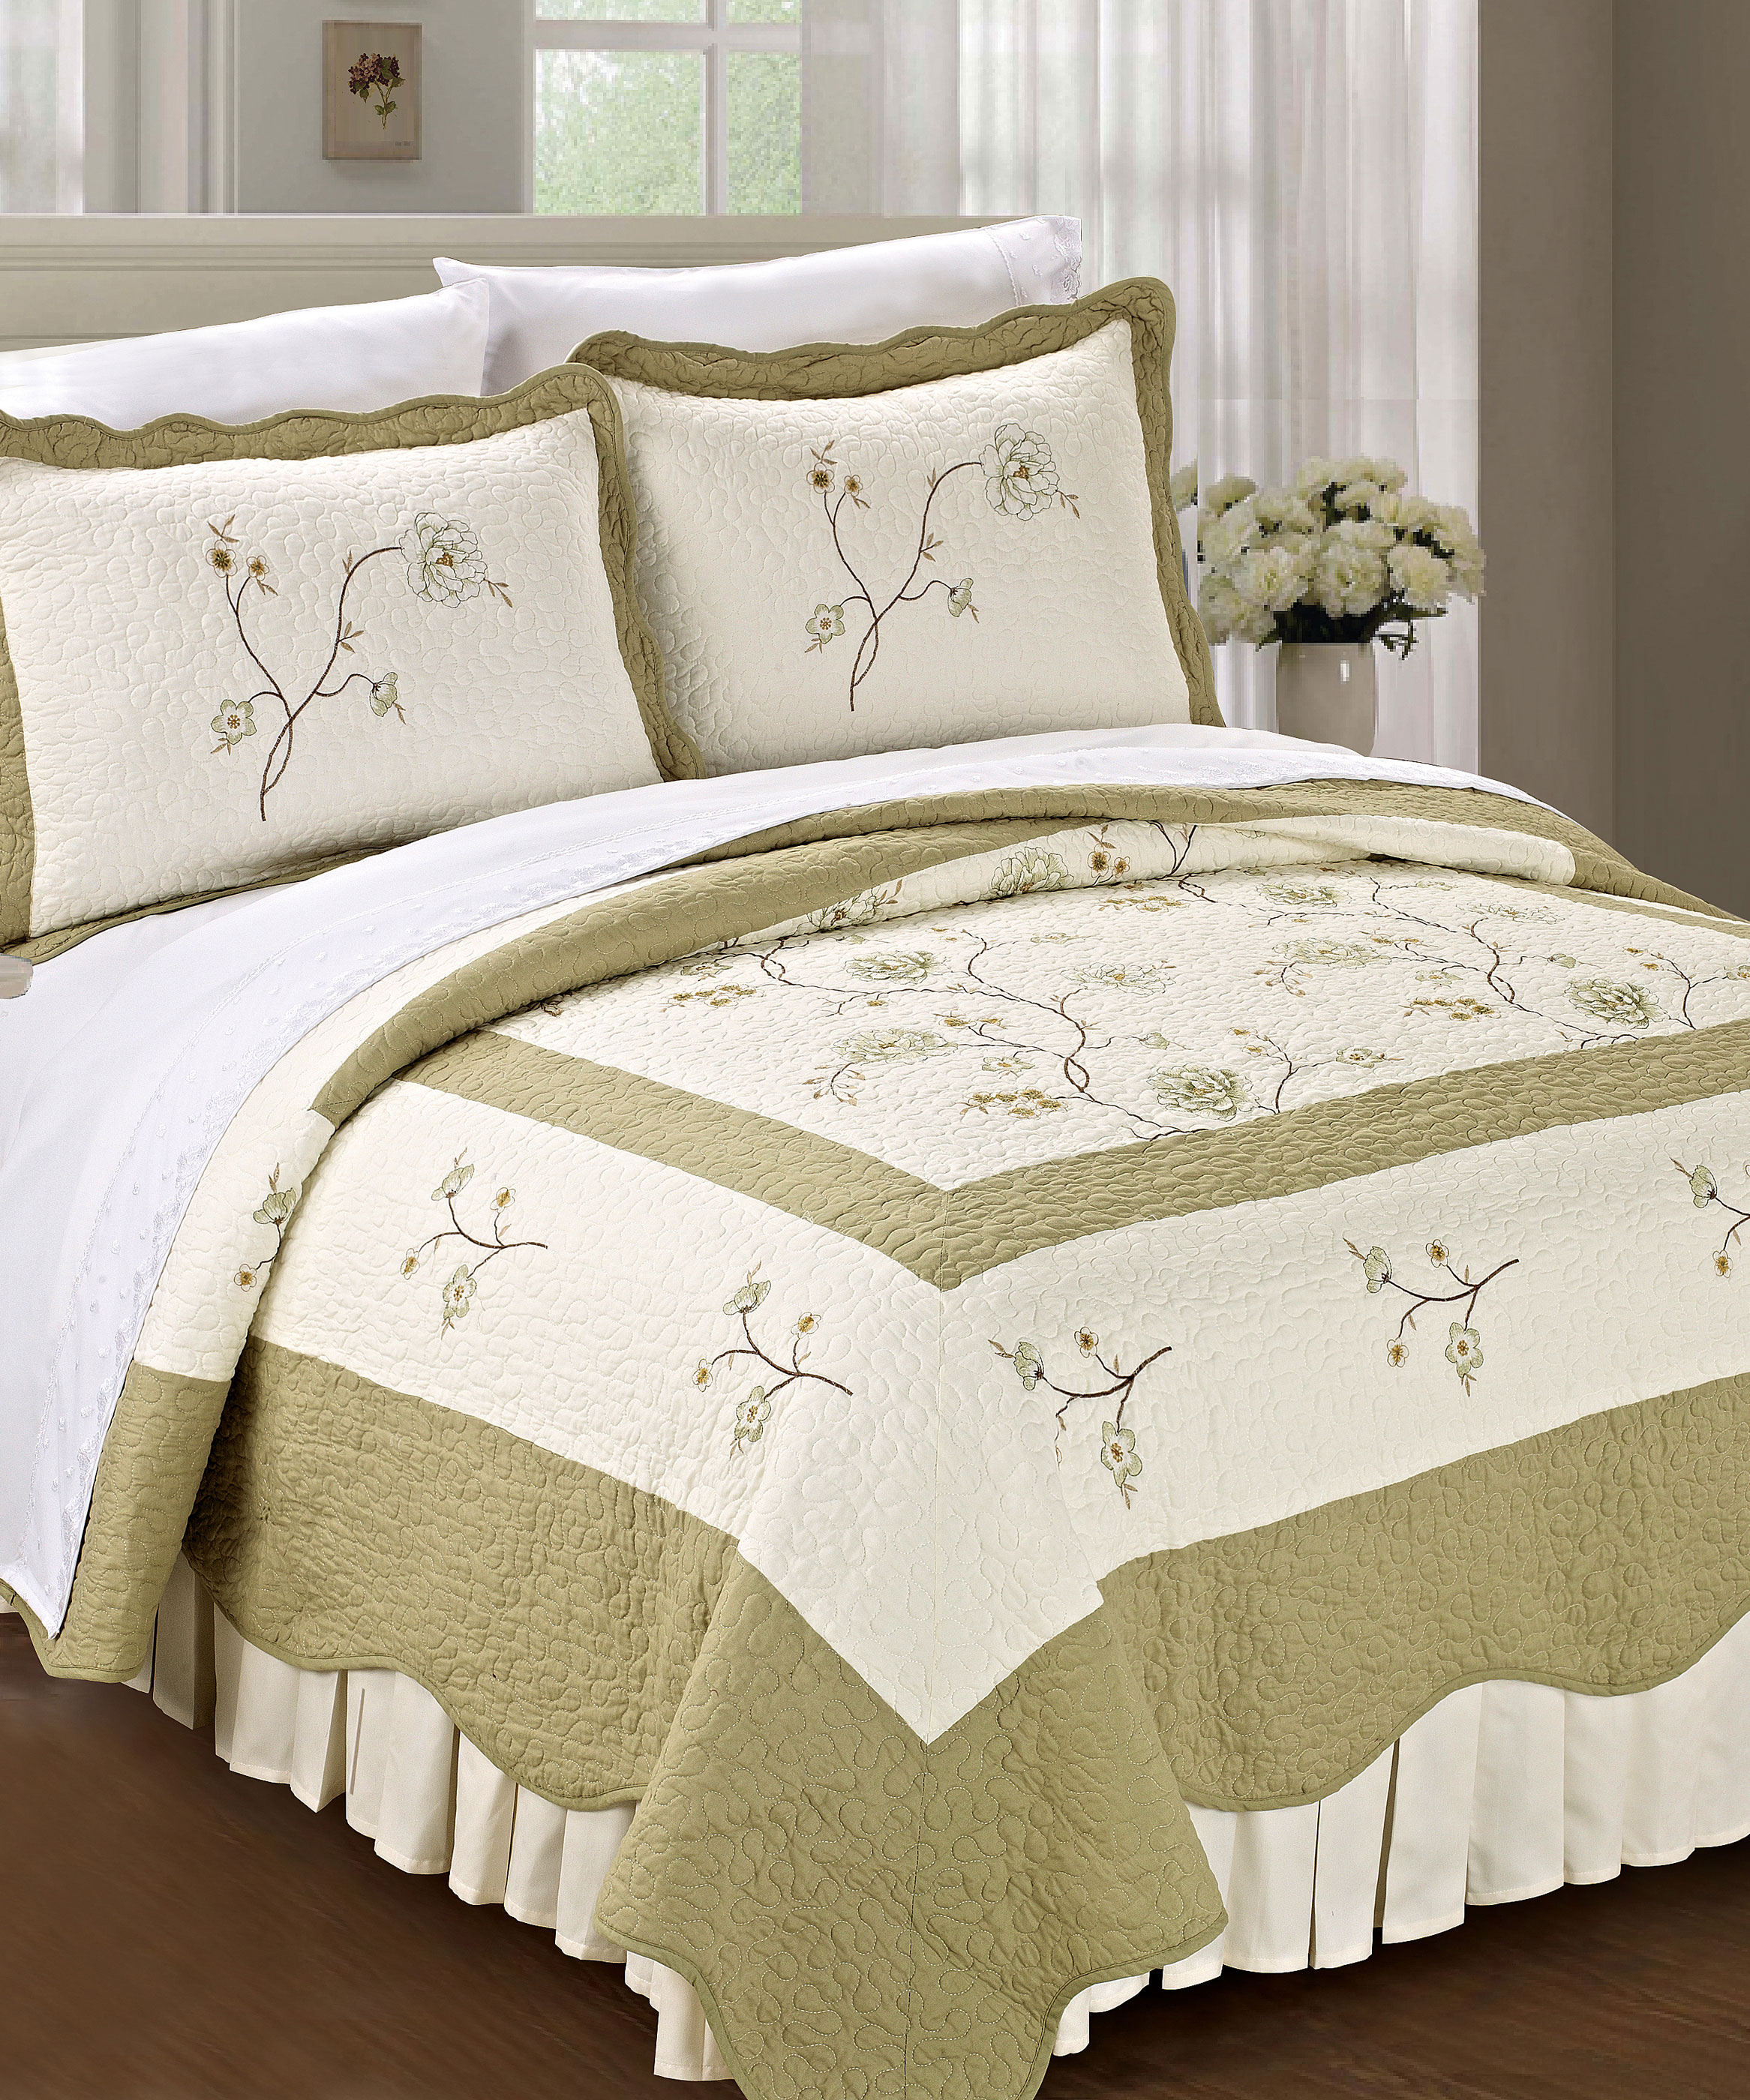 Spring Flowers Quilted Microfiber Bedspread Set Bnf Home Inc